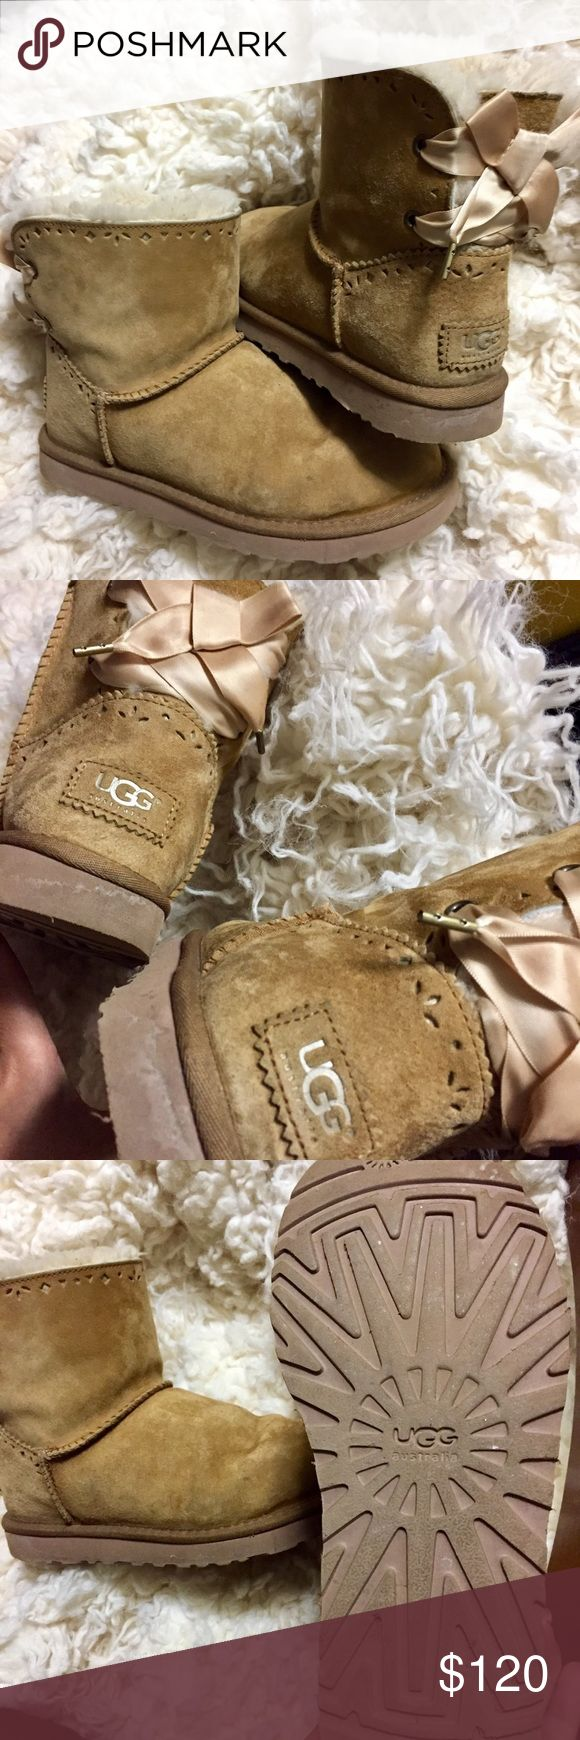 Ugg Dixi Flora Women's size 7 Great condition size 7 . Authentic uggs flora pixi ! Retail 180 UGG Shoes Winter & Rain Boots